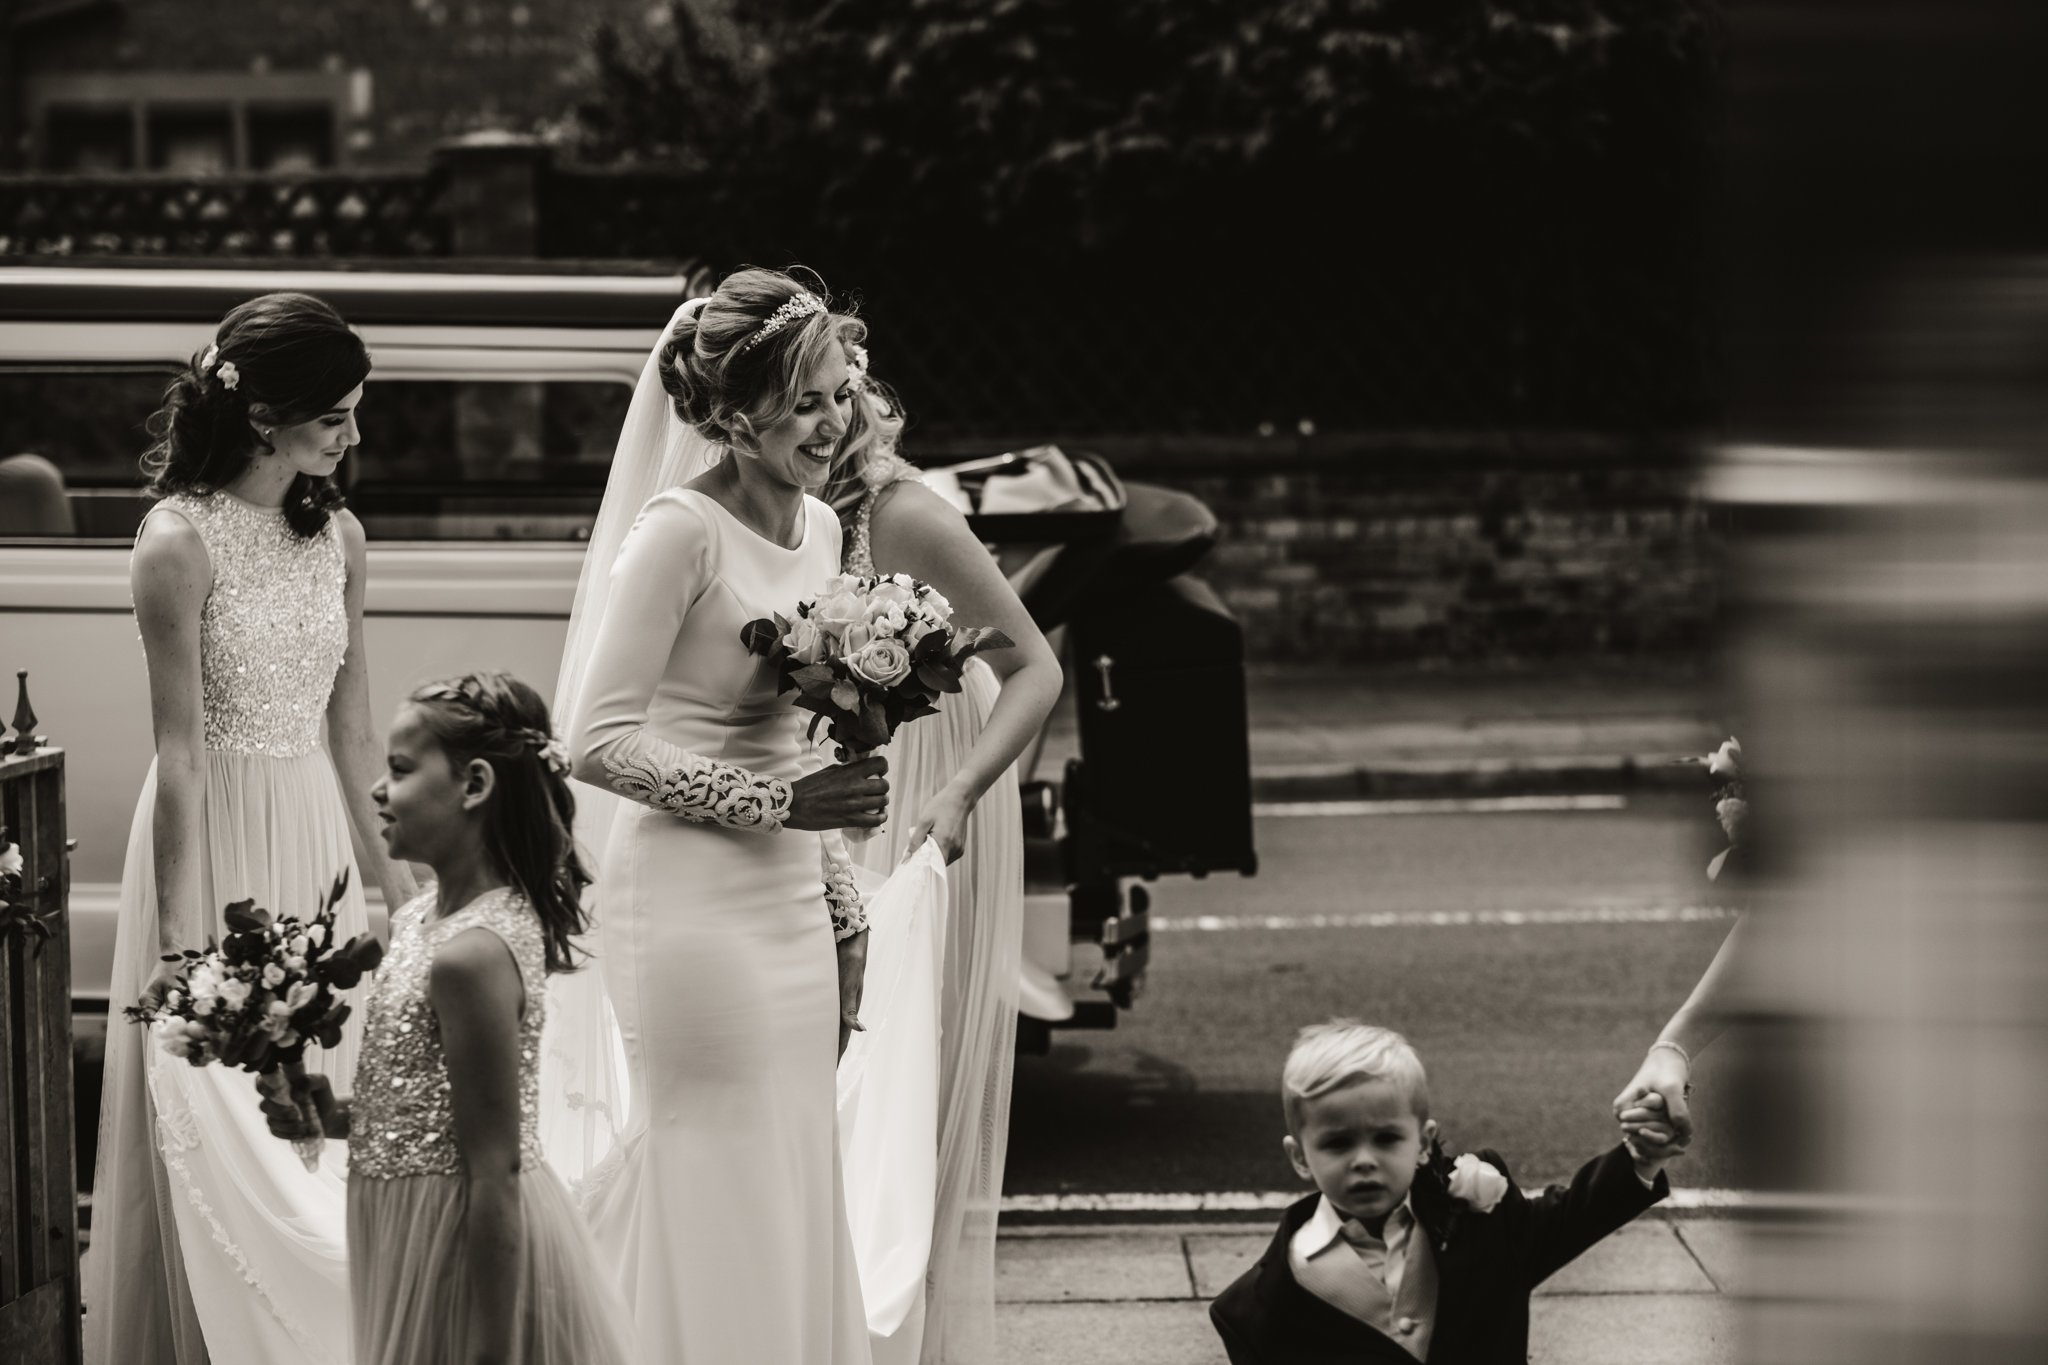 bride arriving at the church with her bridesmaids captured by West Tower wedding photographer Gavin Alexander